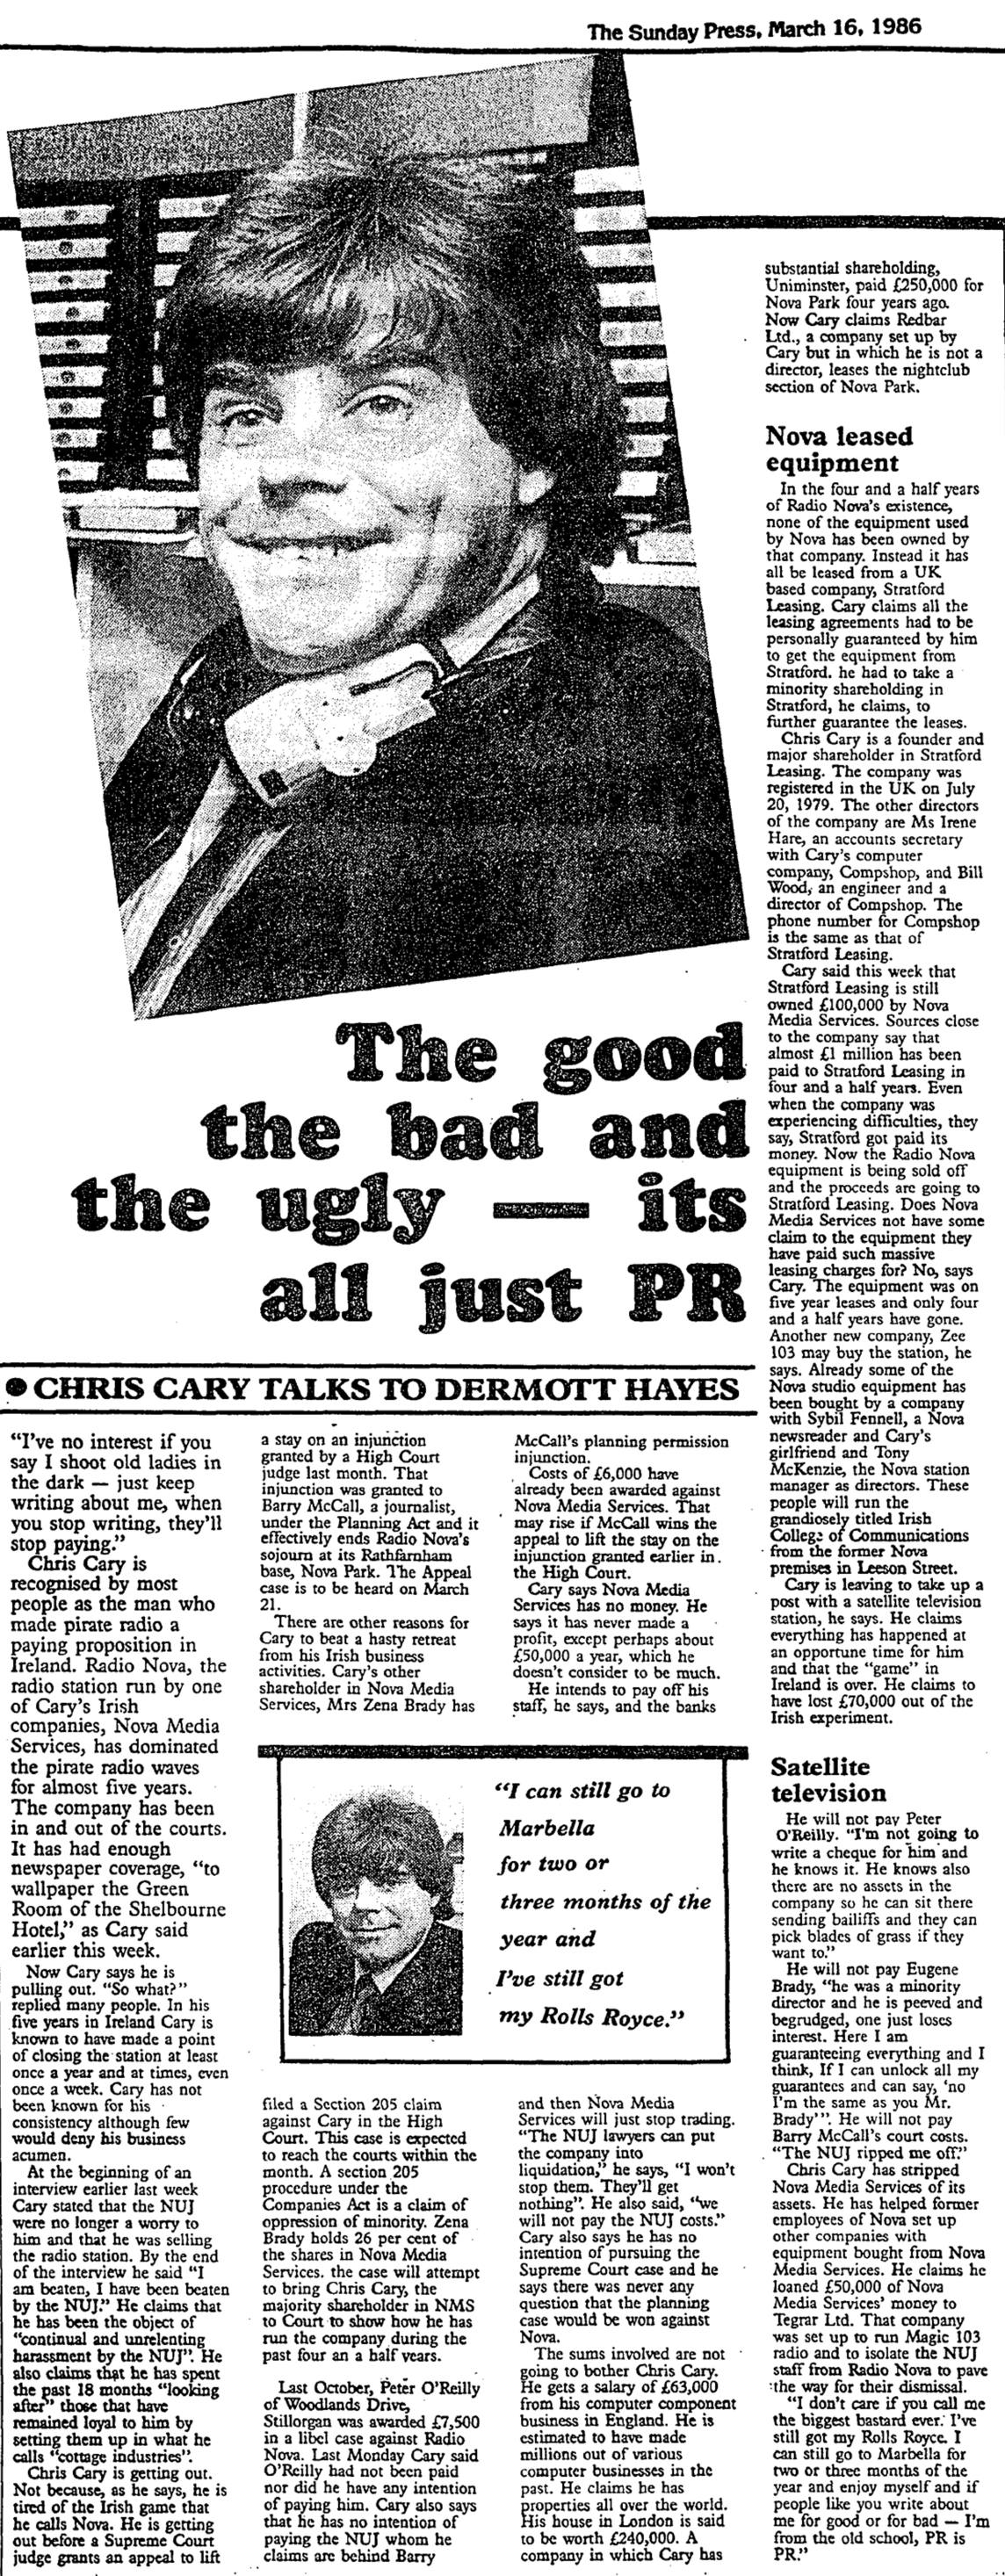 Chris Cary interview